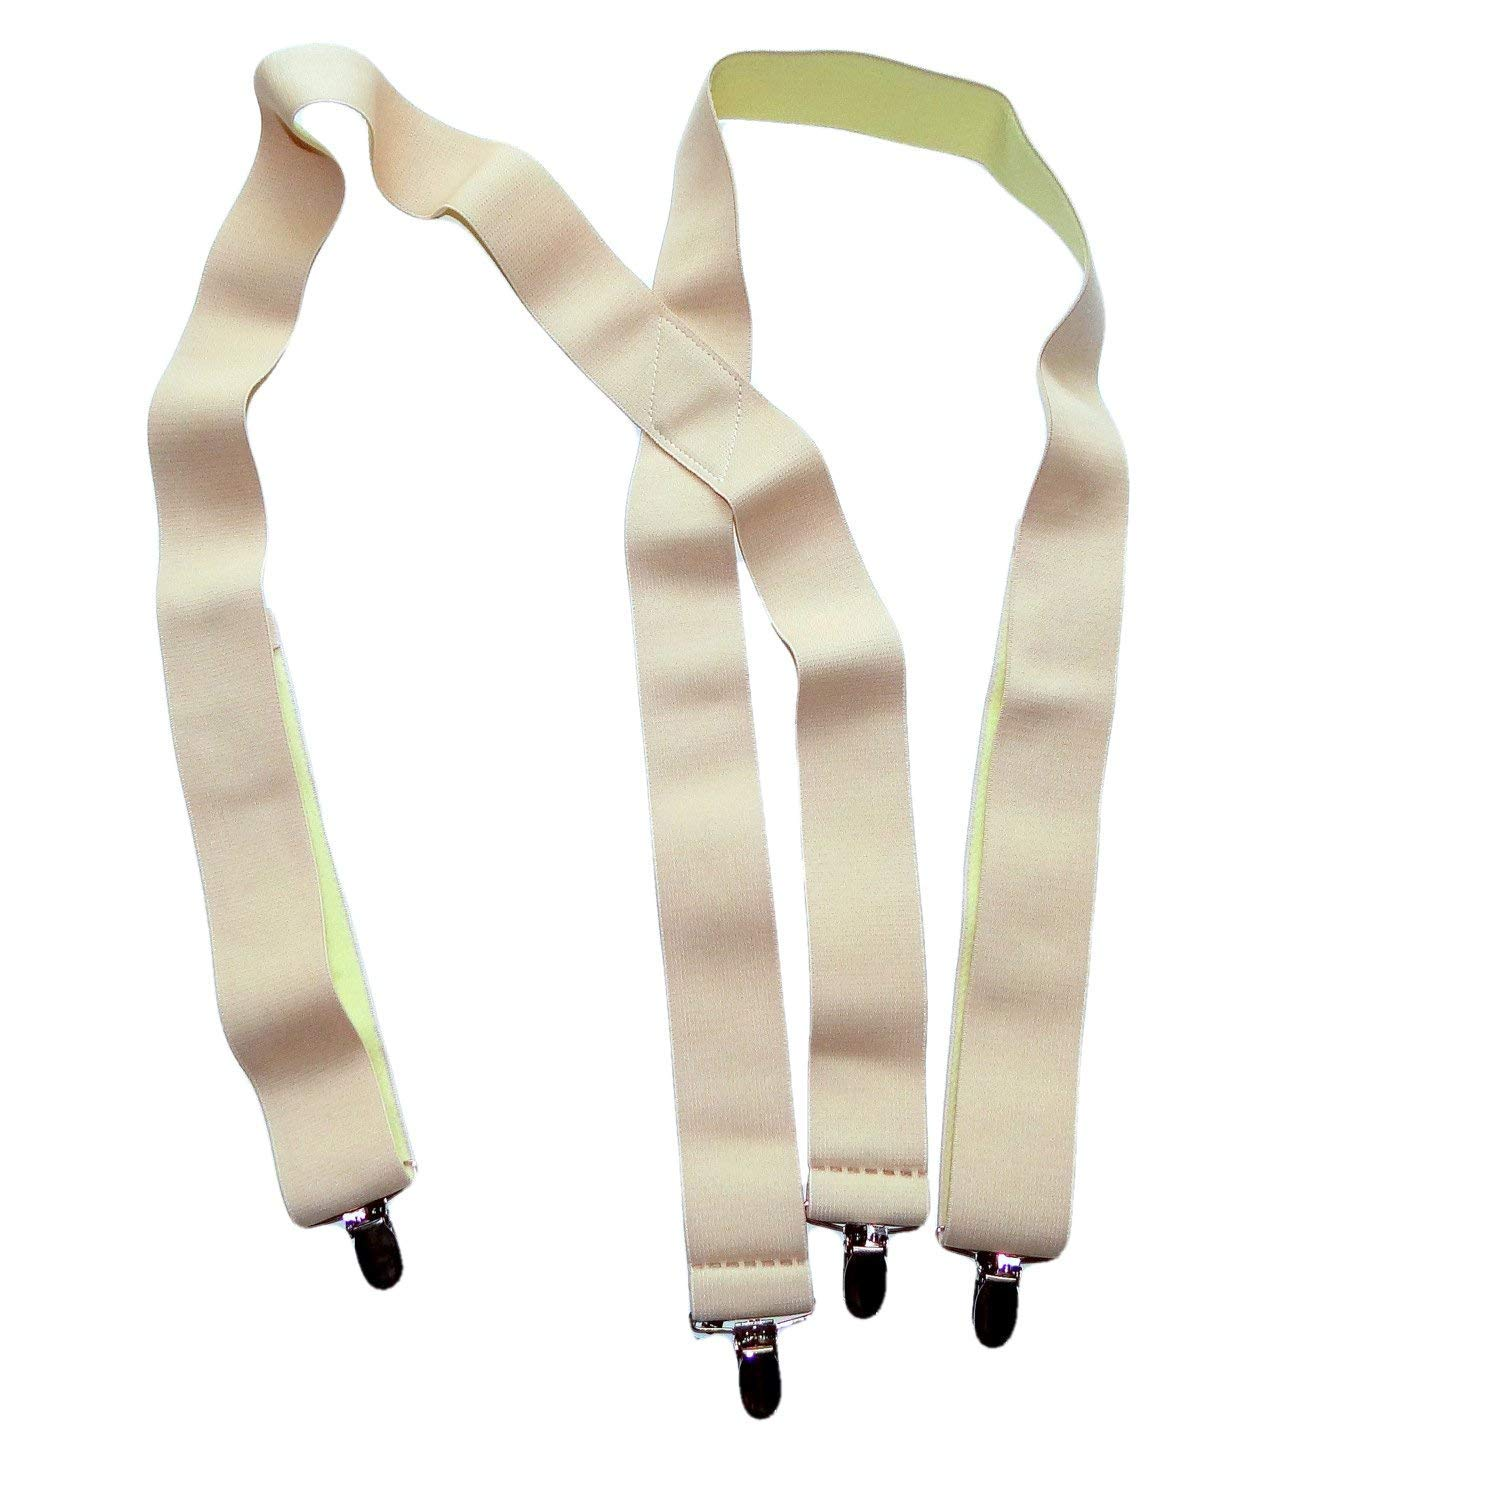 "Solid Beige Hold-Ups XL Undergarment Suspenders 1 1/2"" wide X-back Style, No-slip Metal Clips"